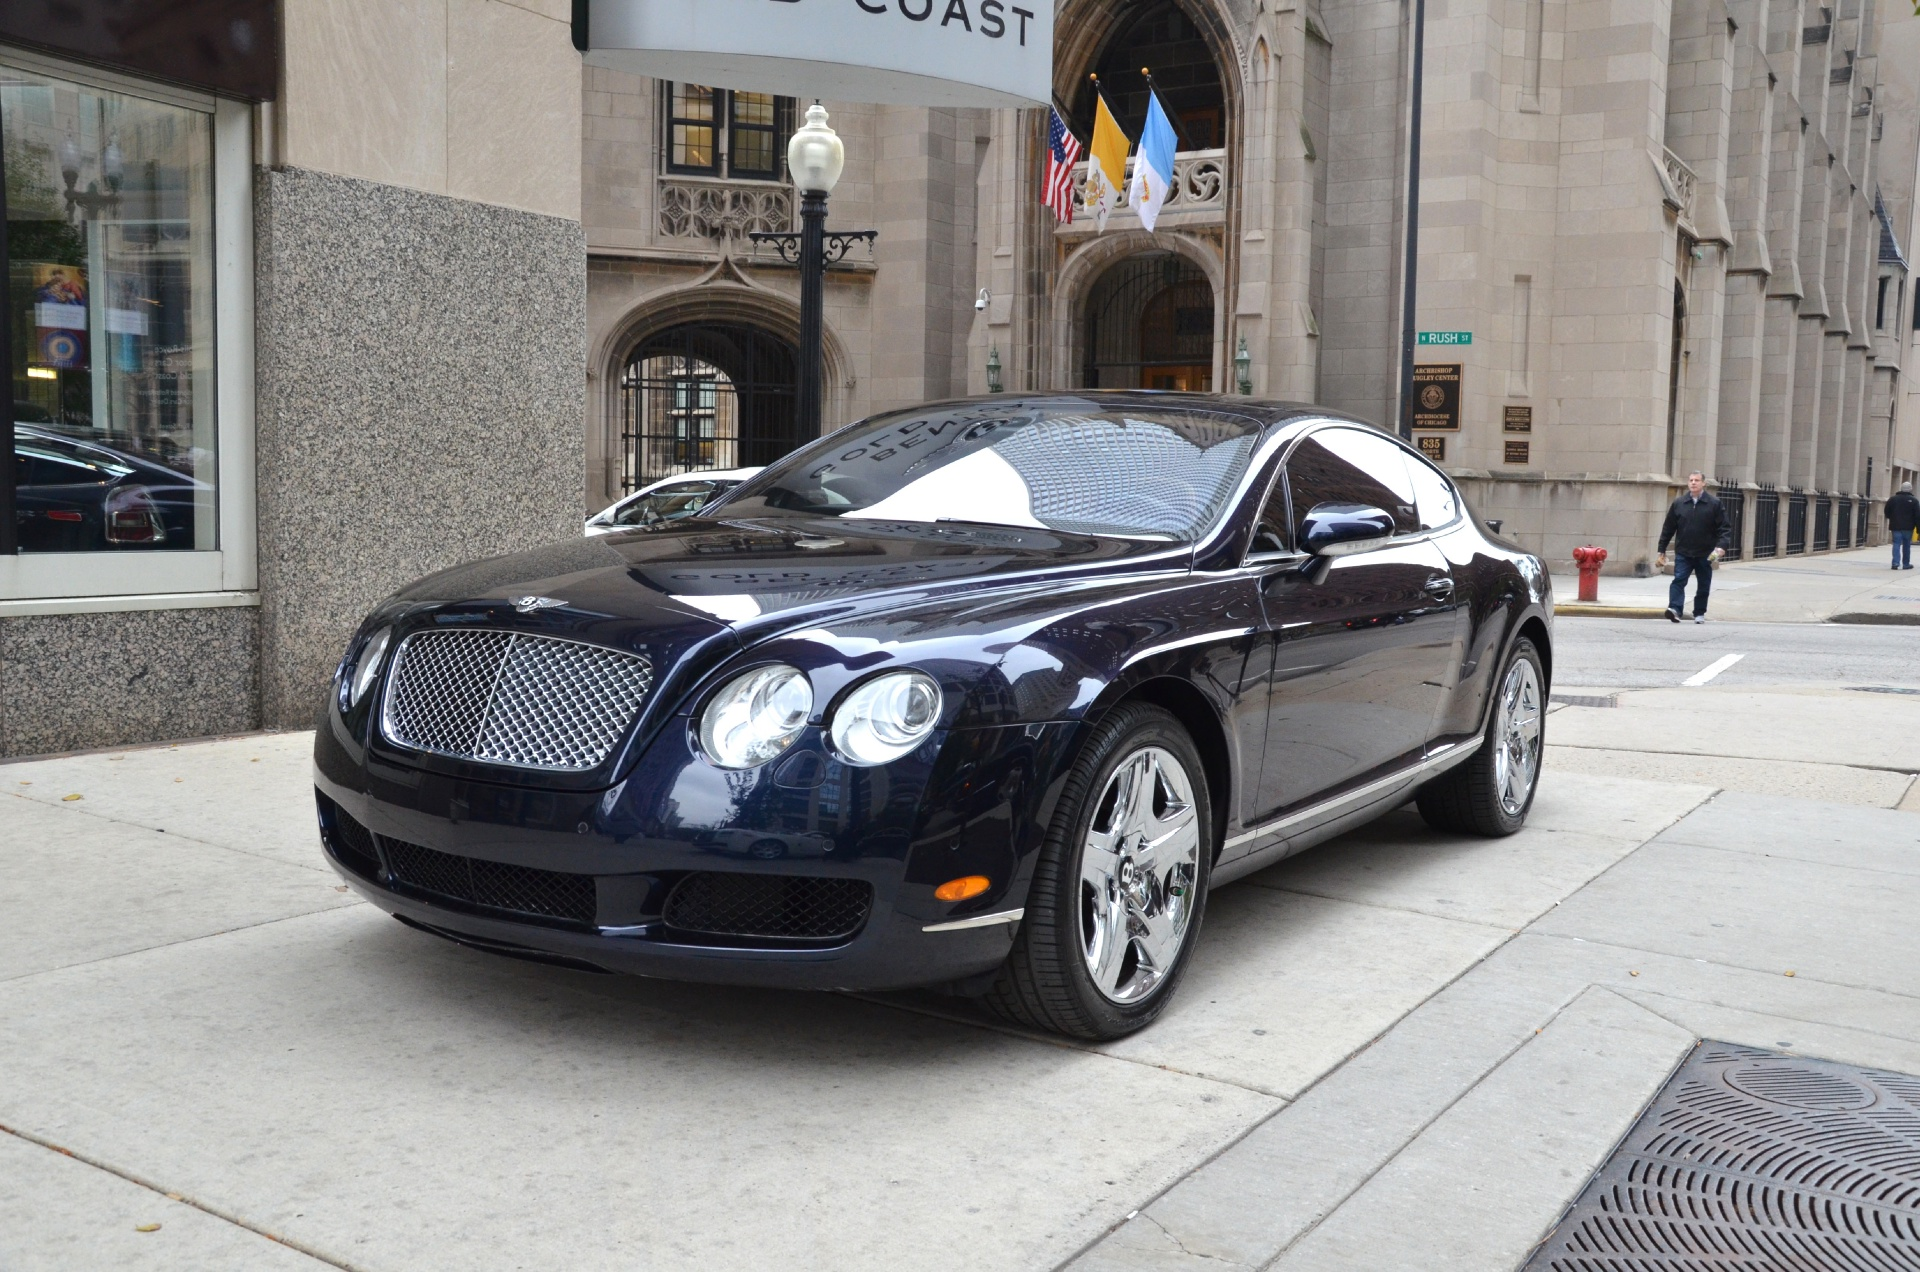 2005 Bentley Continental Gt Stock # B341a For Sale Near